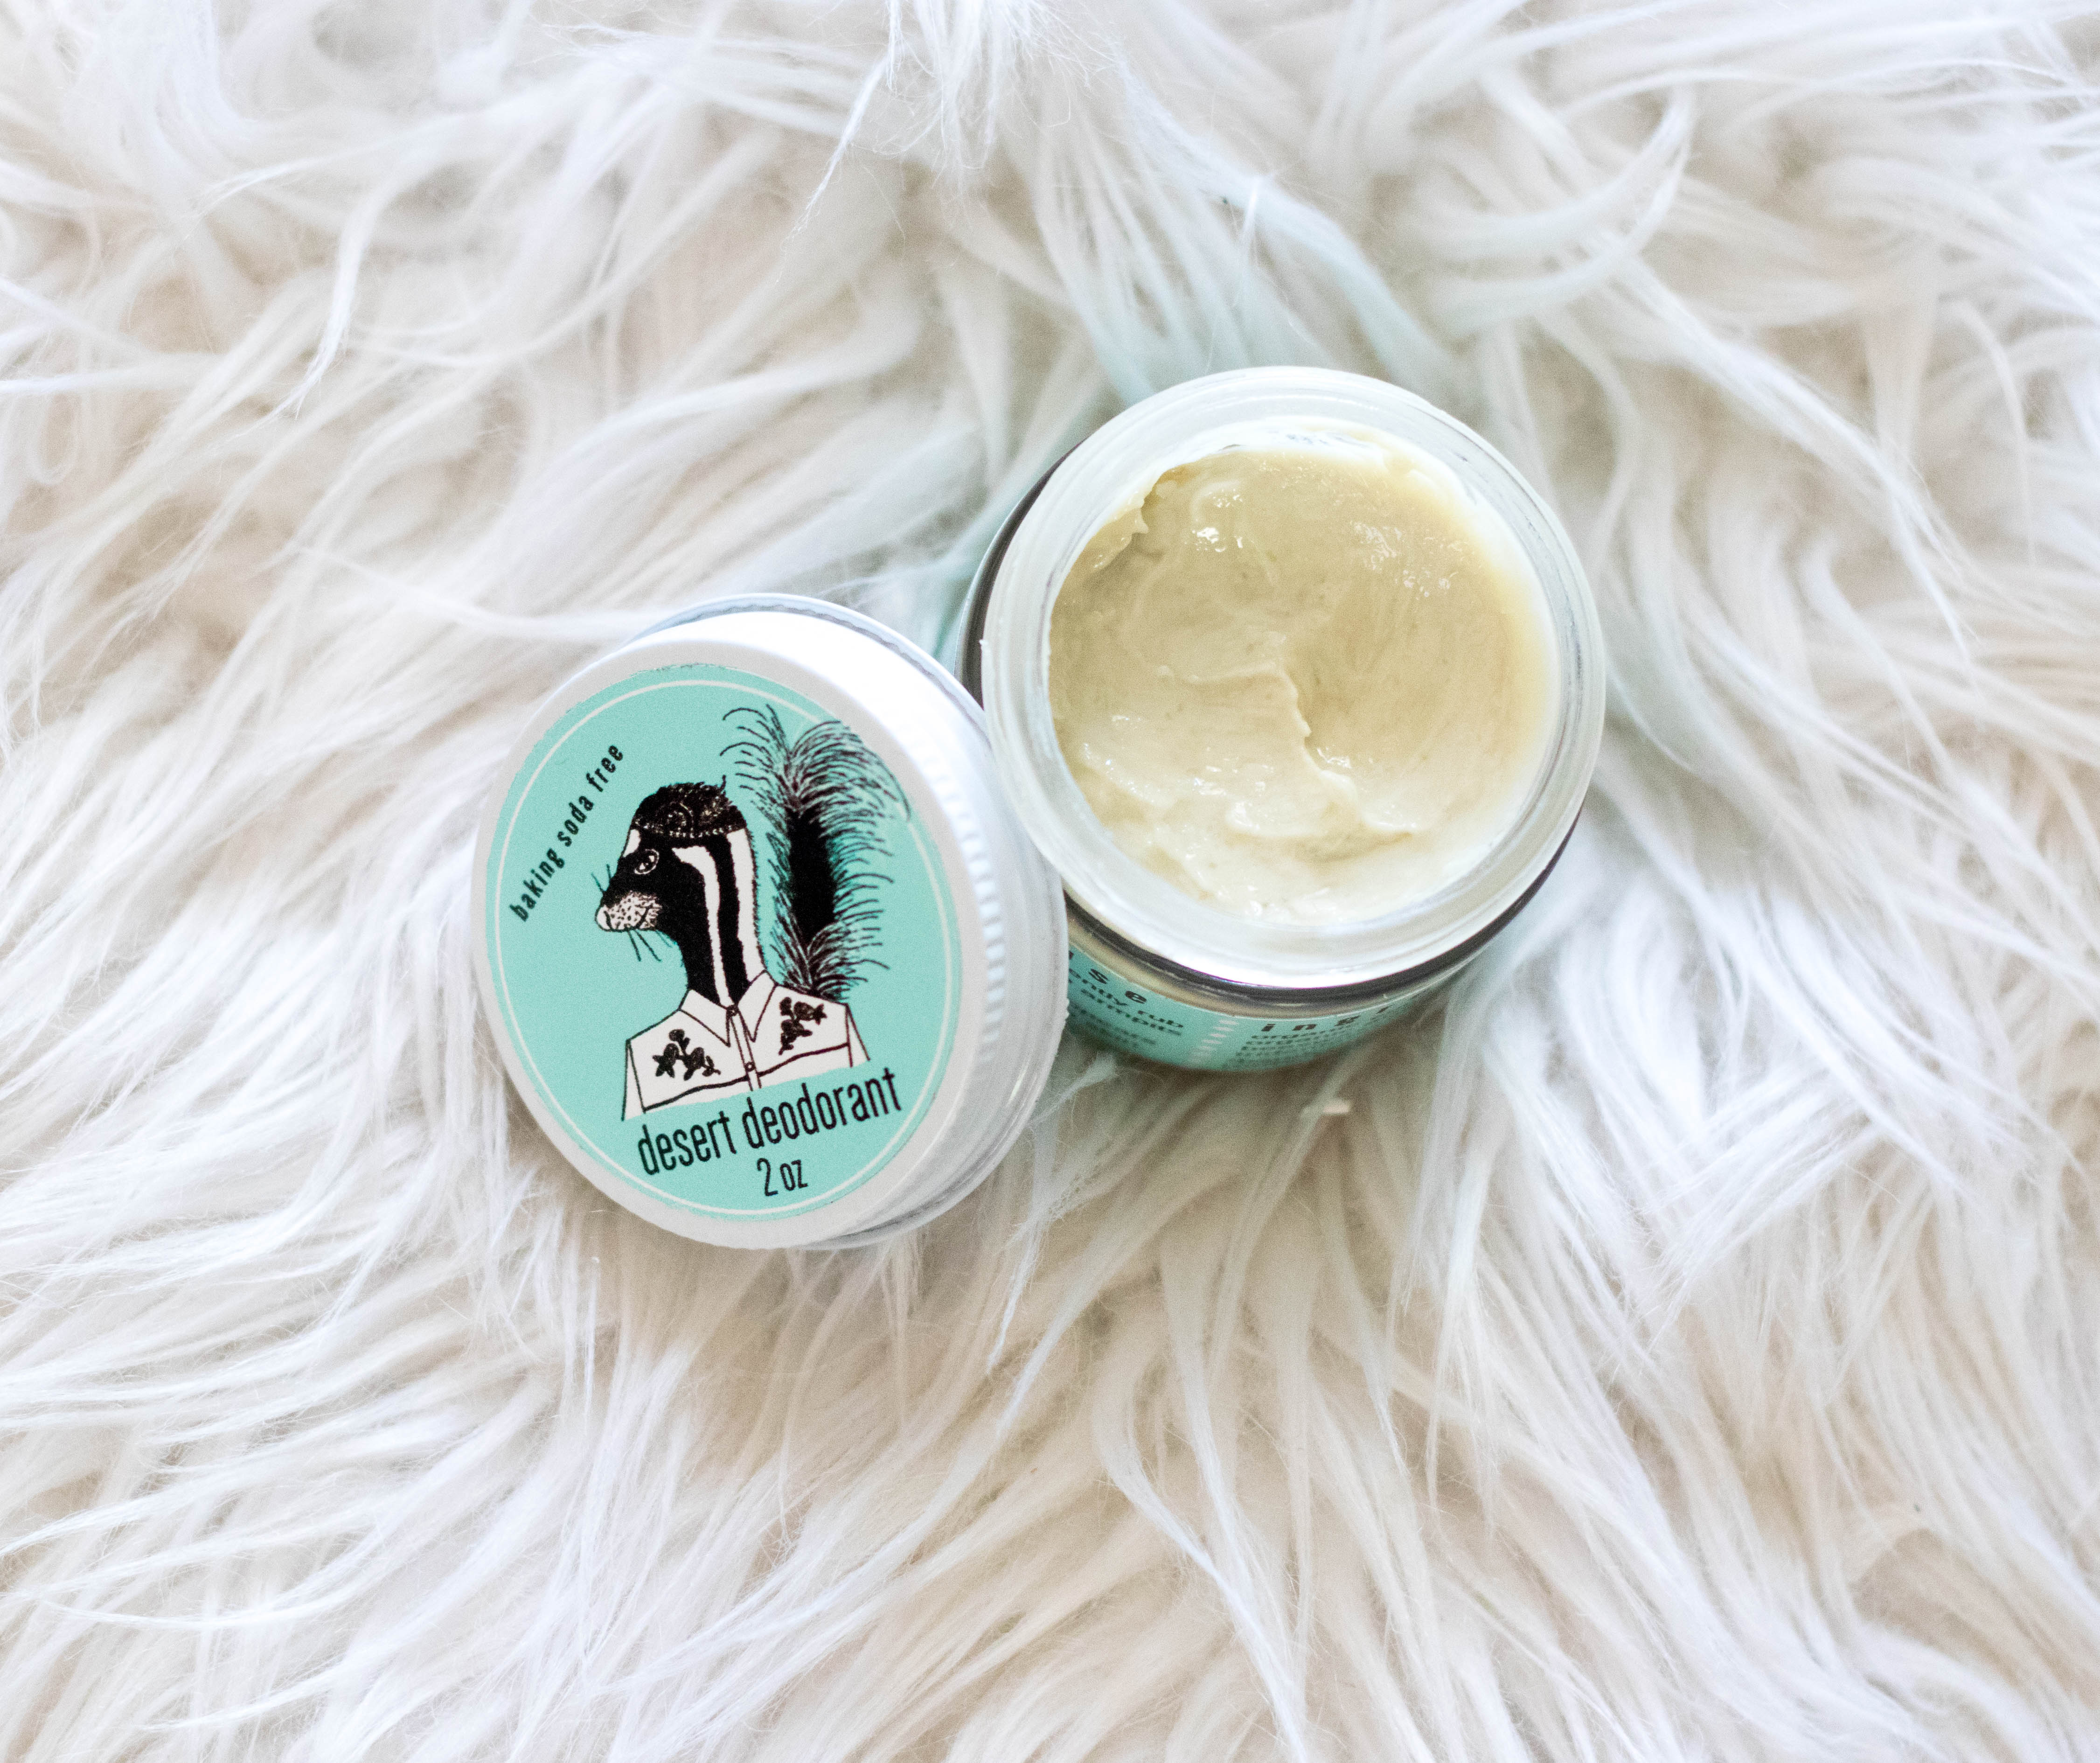 dryland wilds desert deodorant #naturaldeodorant #cleanbeauty #natural